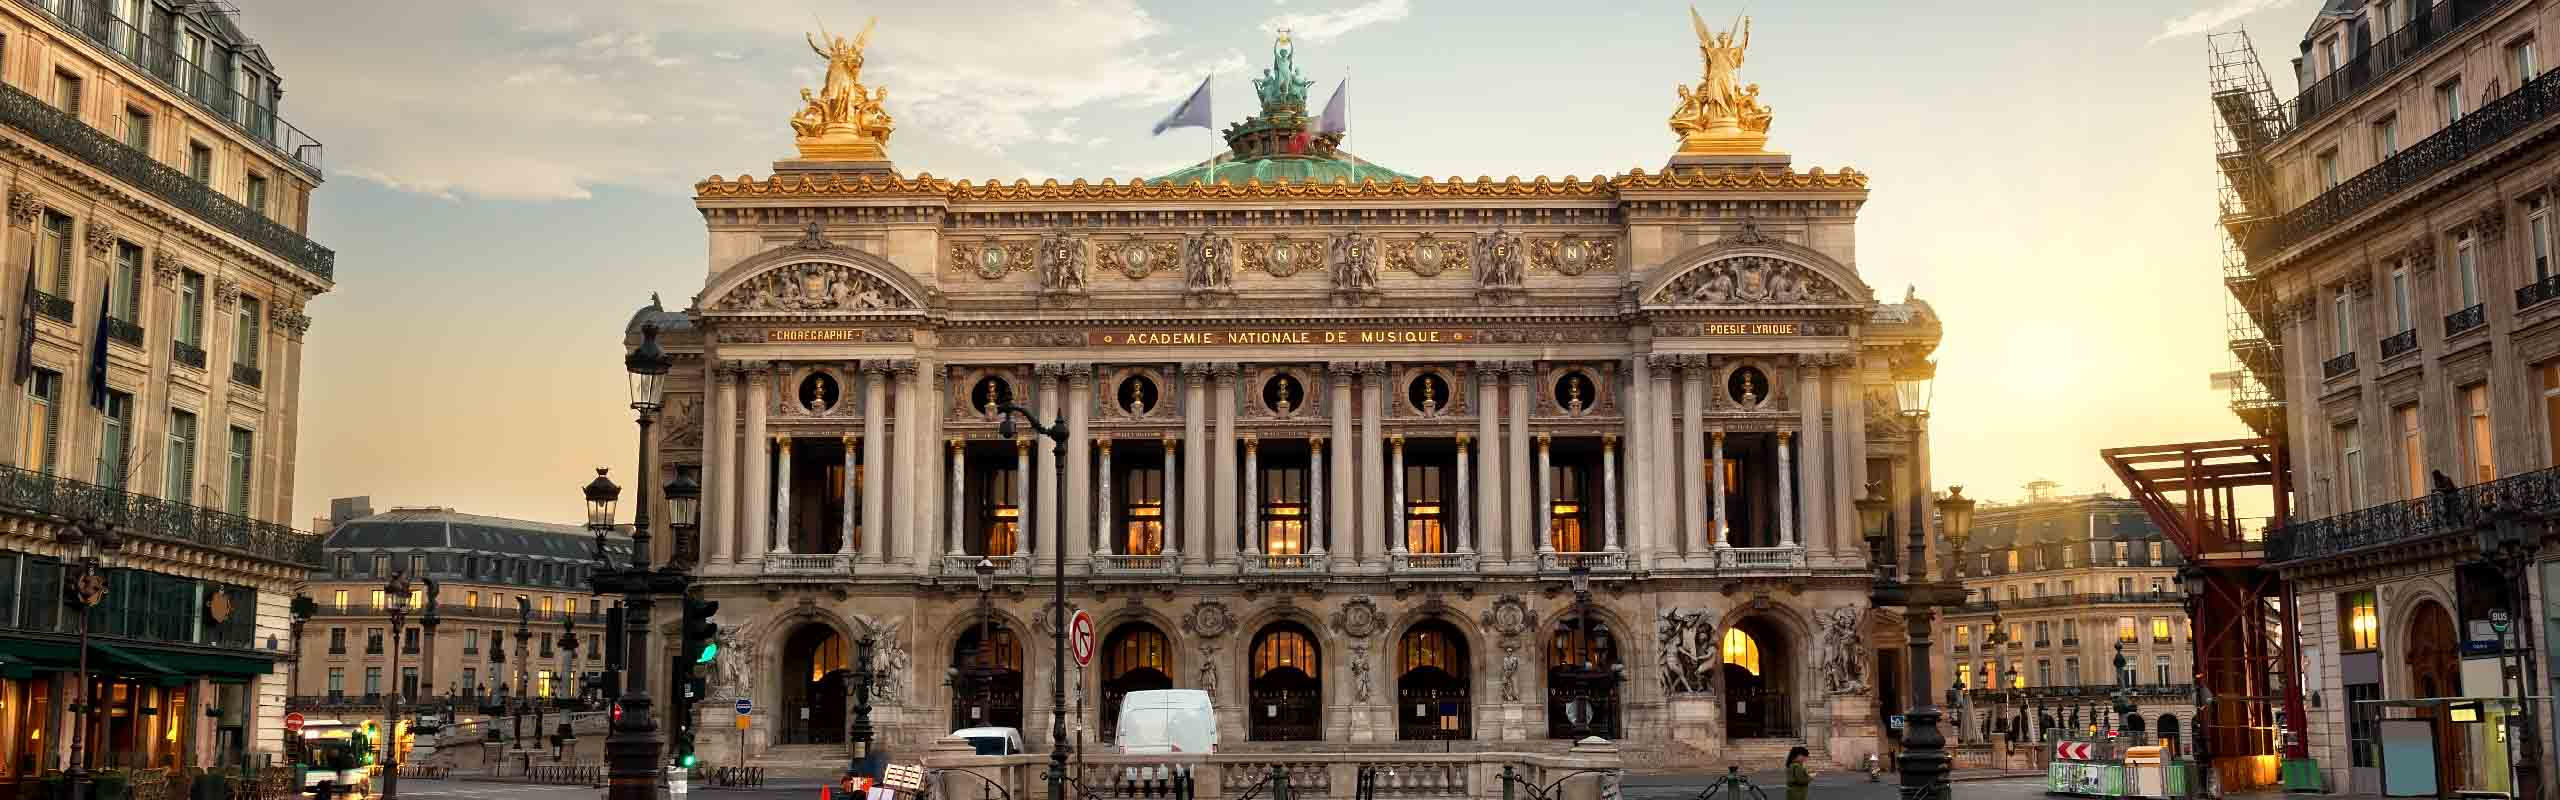 Paris - Immobilier Paris 9ème arrondissement - Opéra Garnier - Engel Volkers